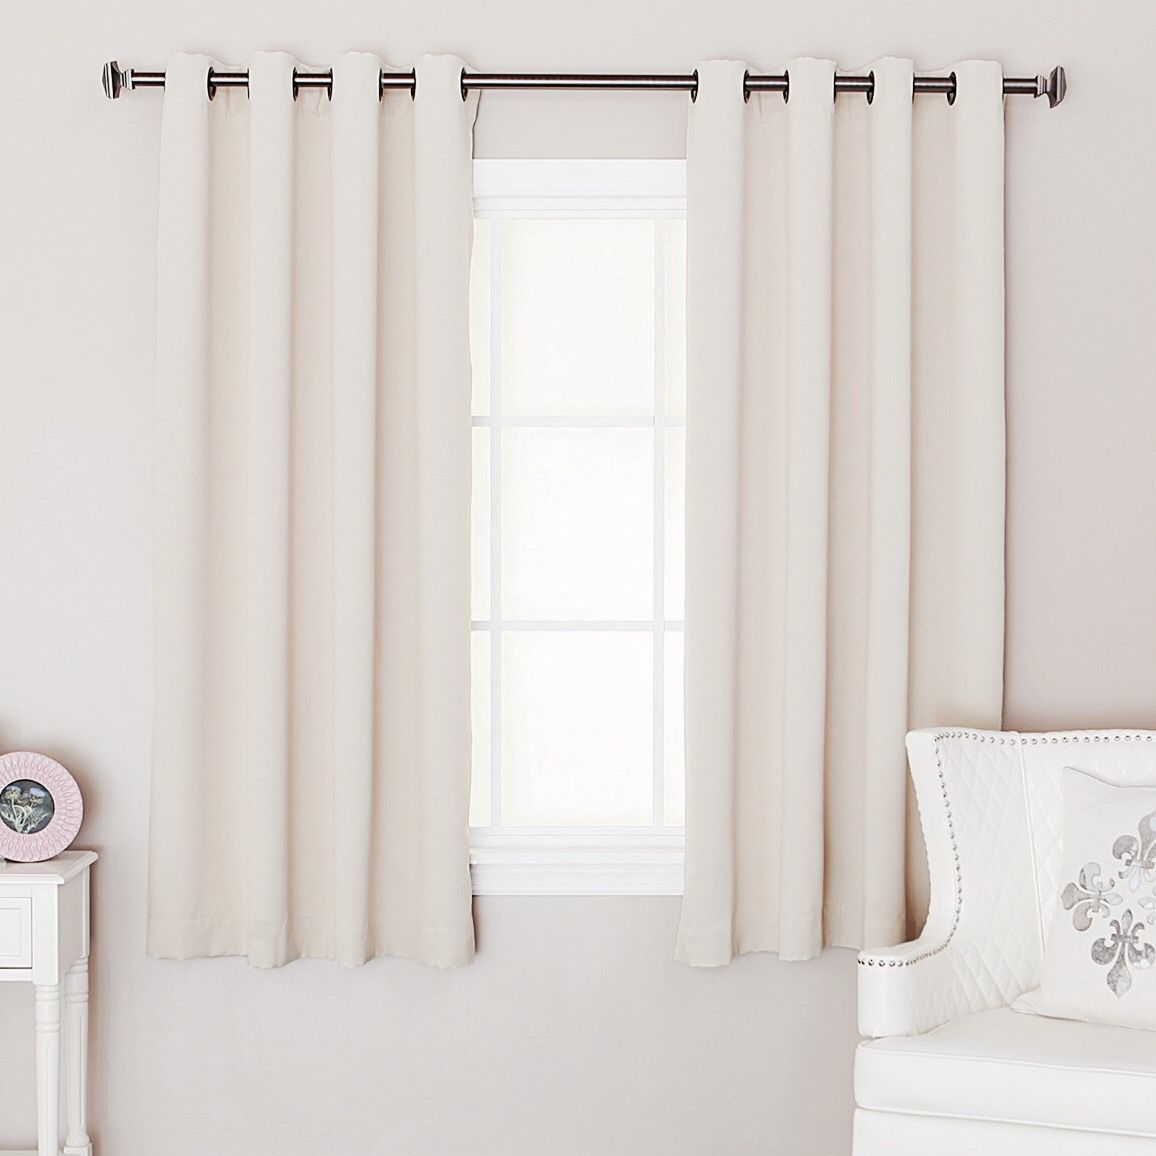 Genial Short Curtains   Square Bedroom Window